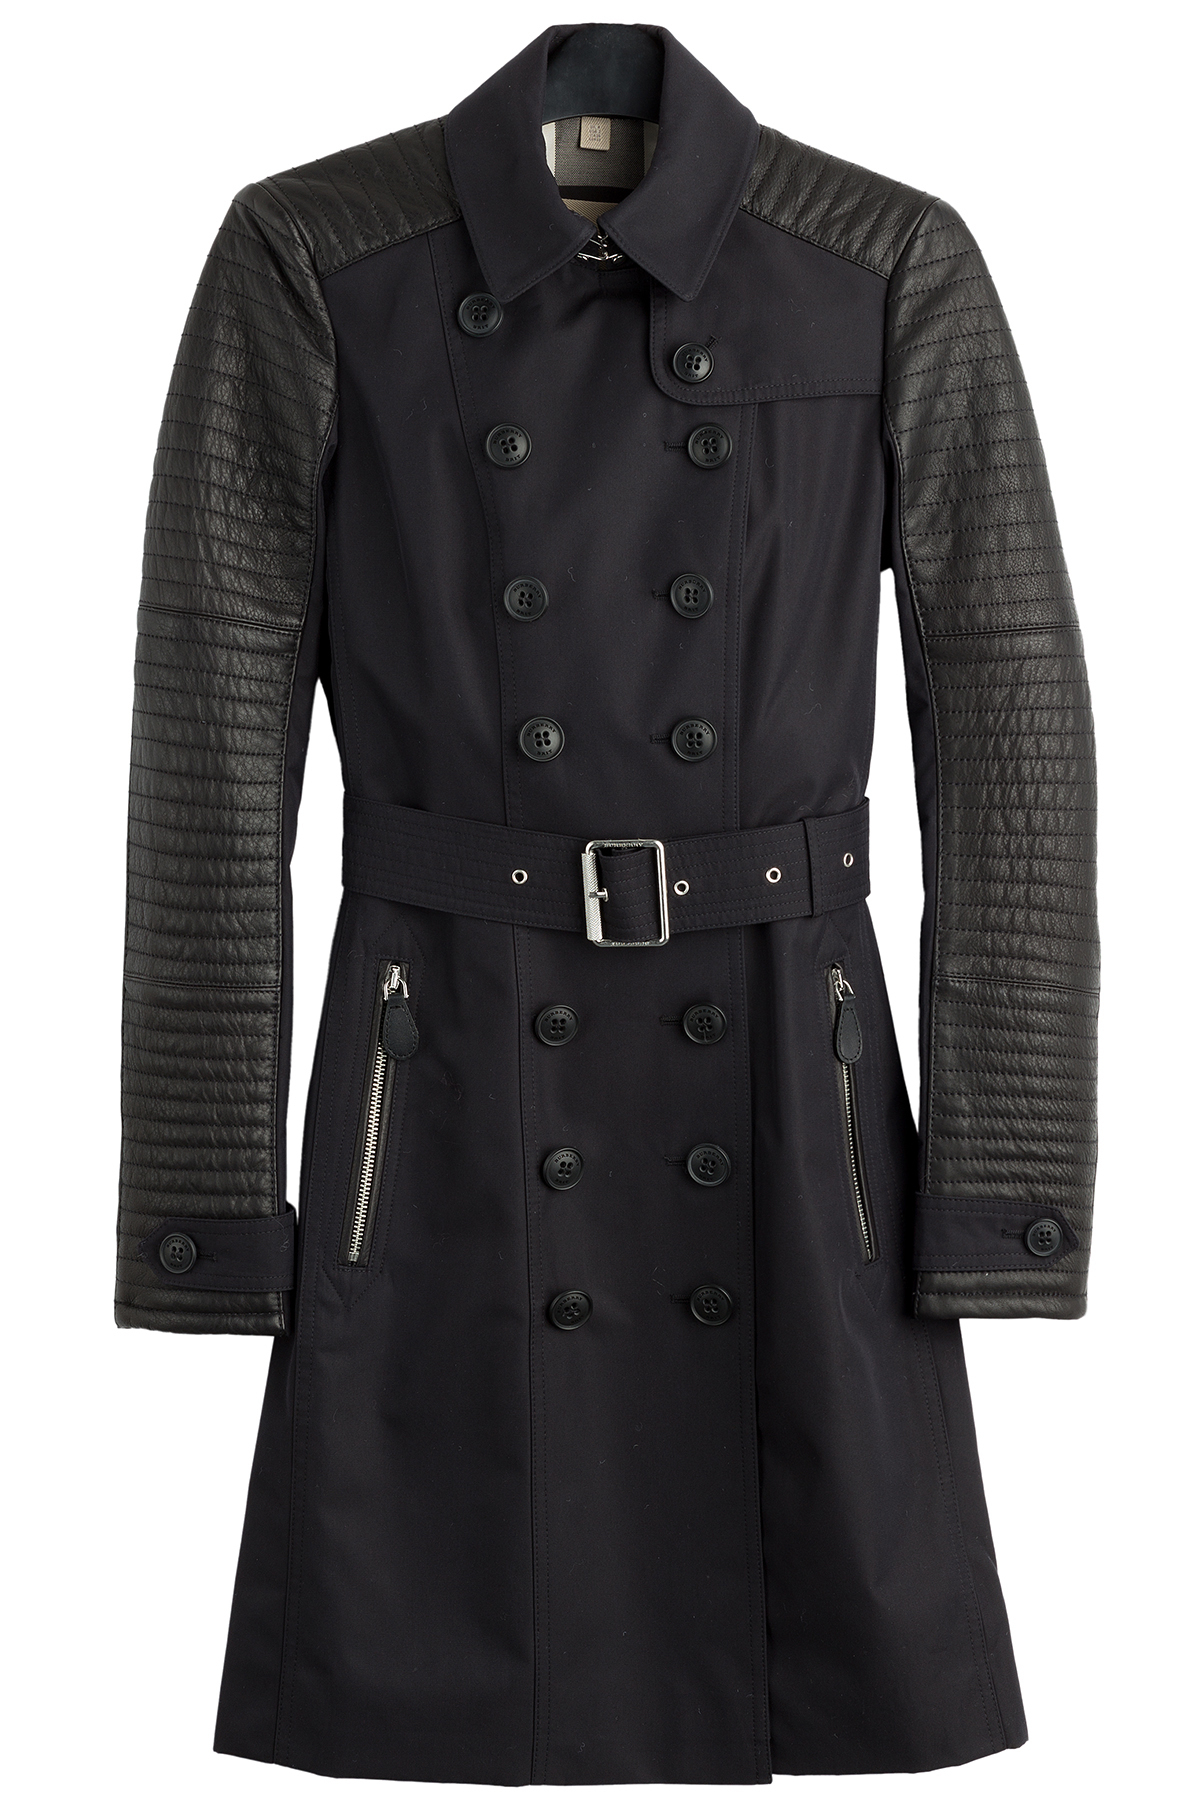 Wool jackets with leather sleeves